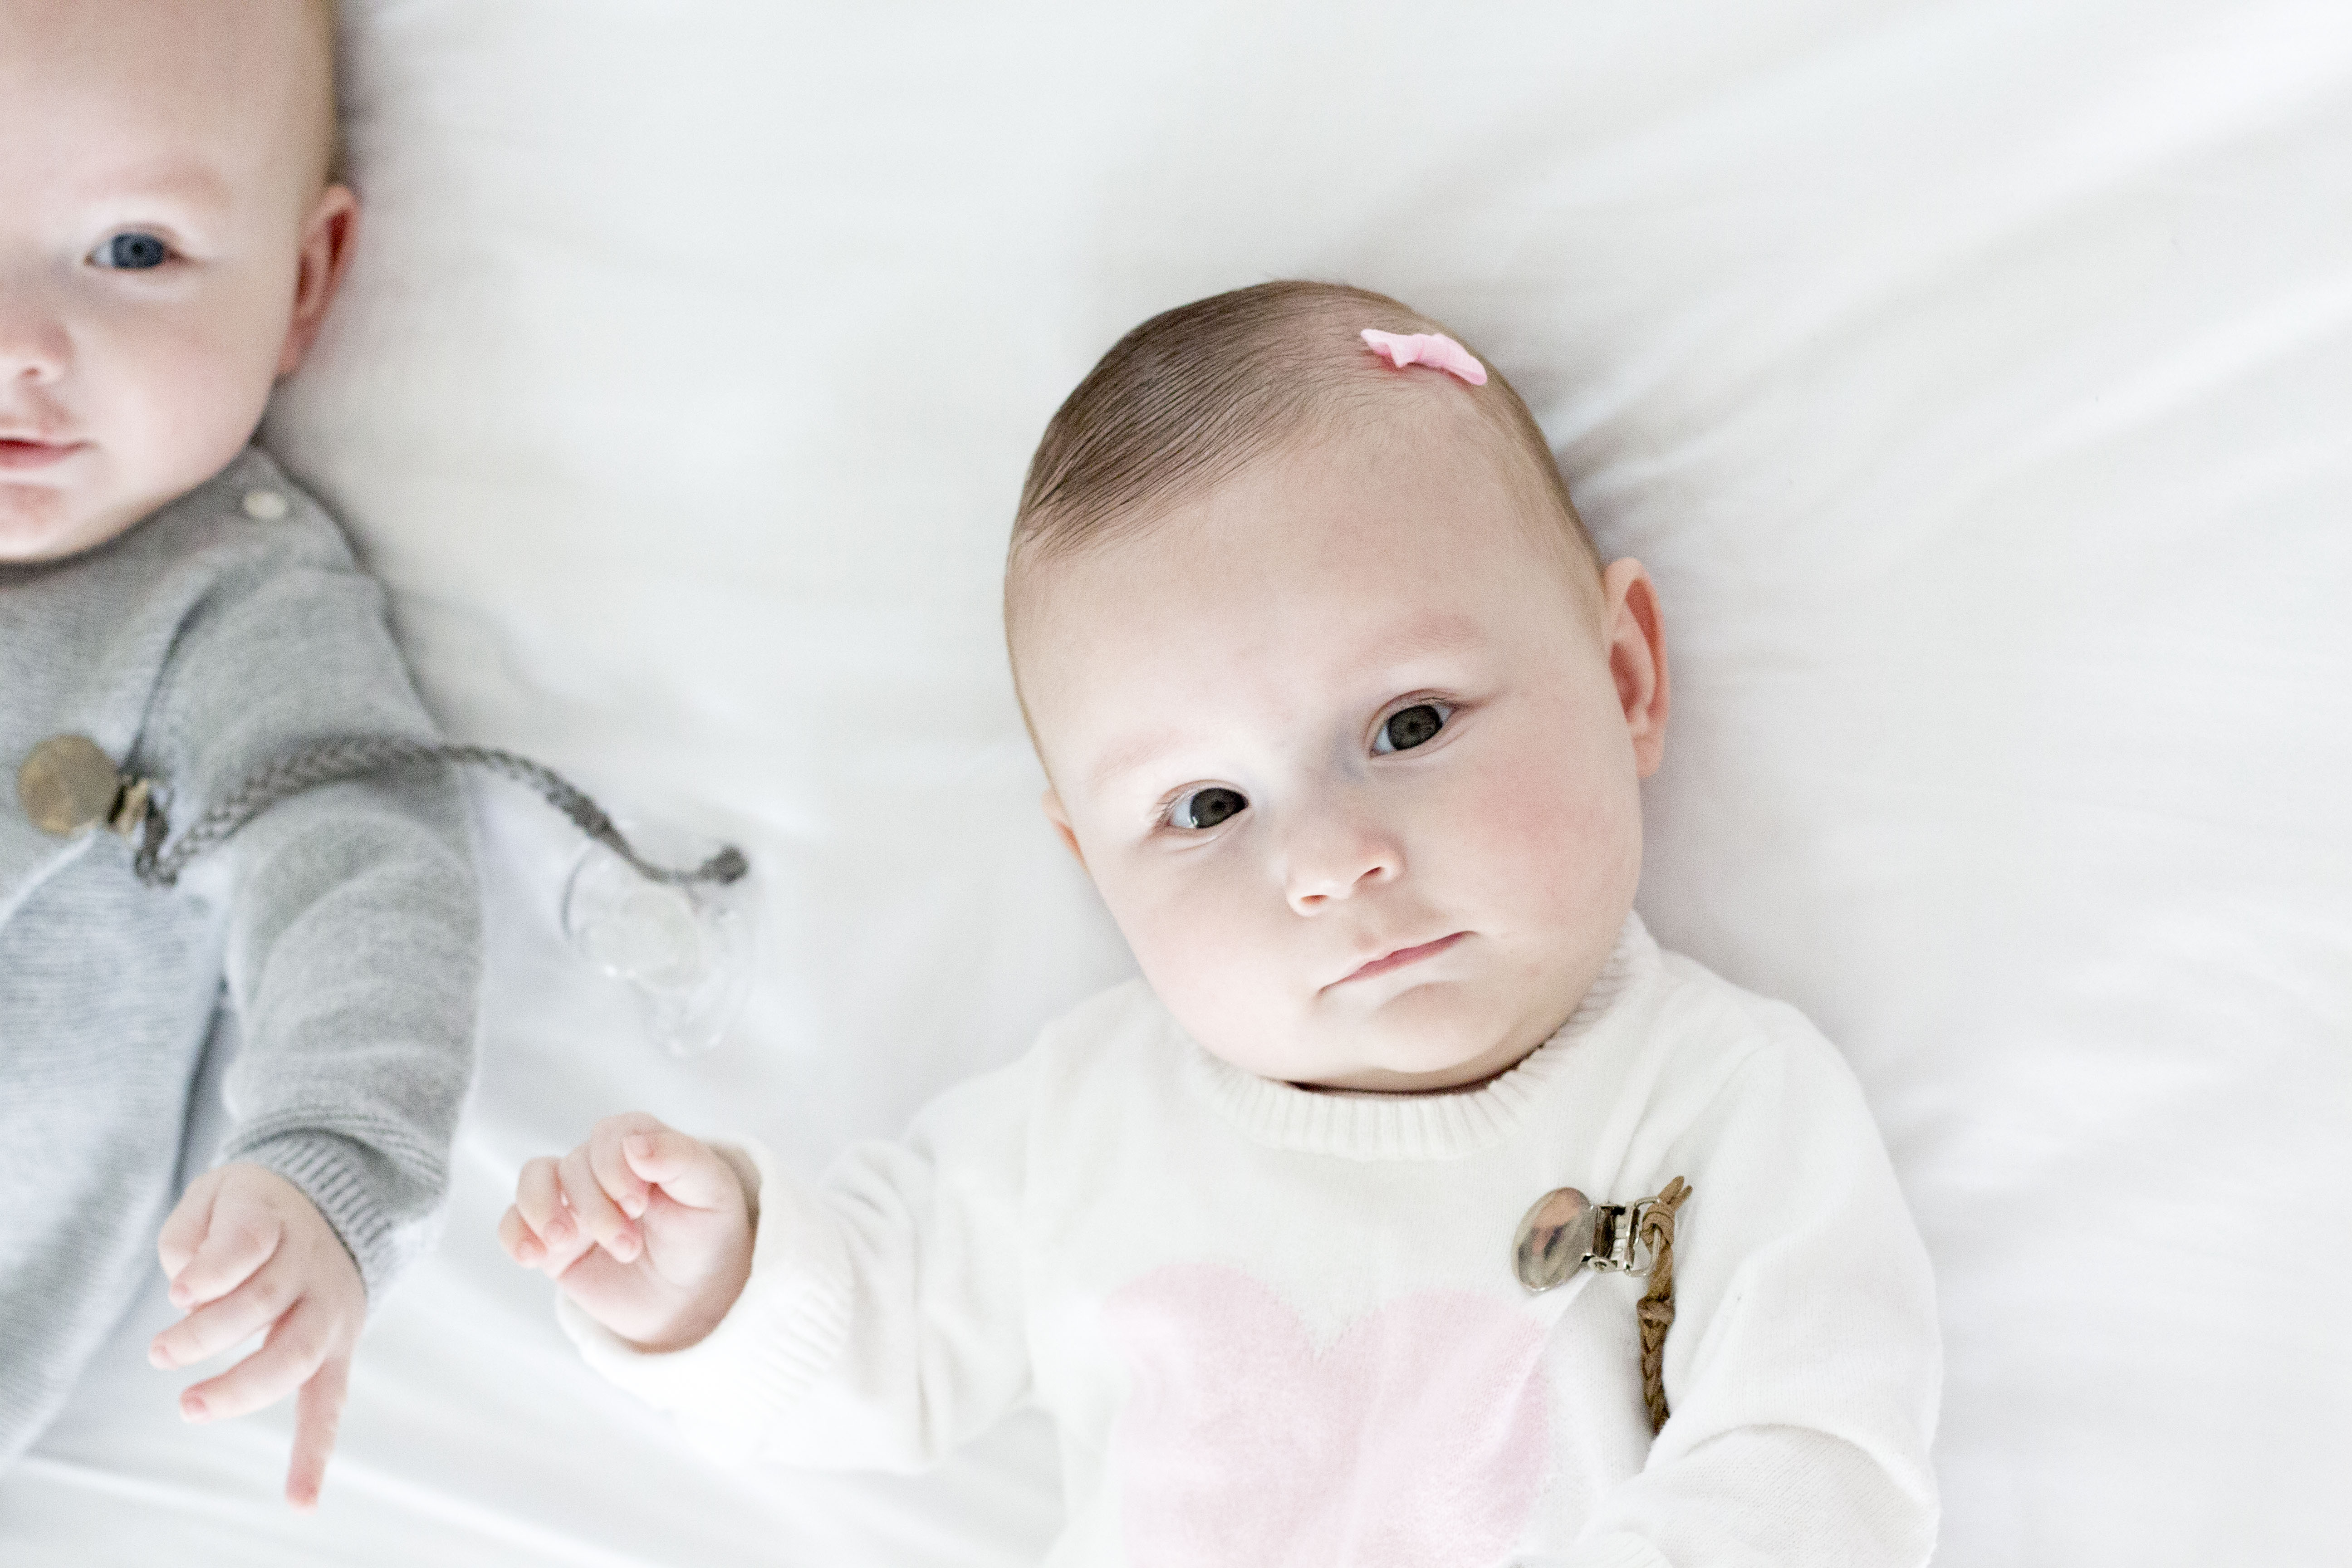 How to Get a Bow to Stay in Baby's Hair